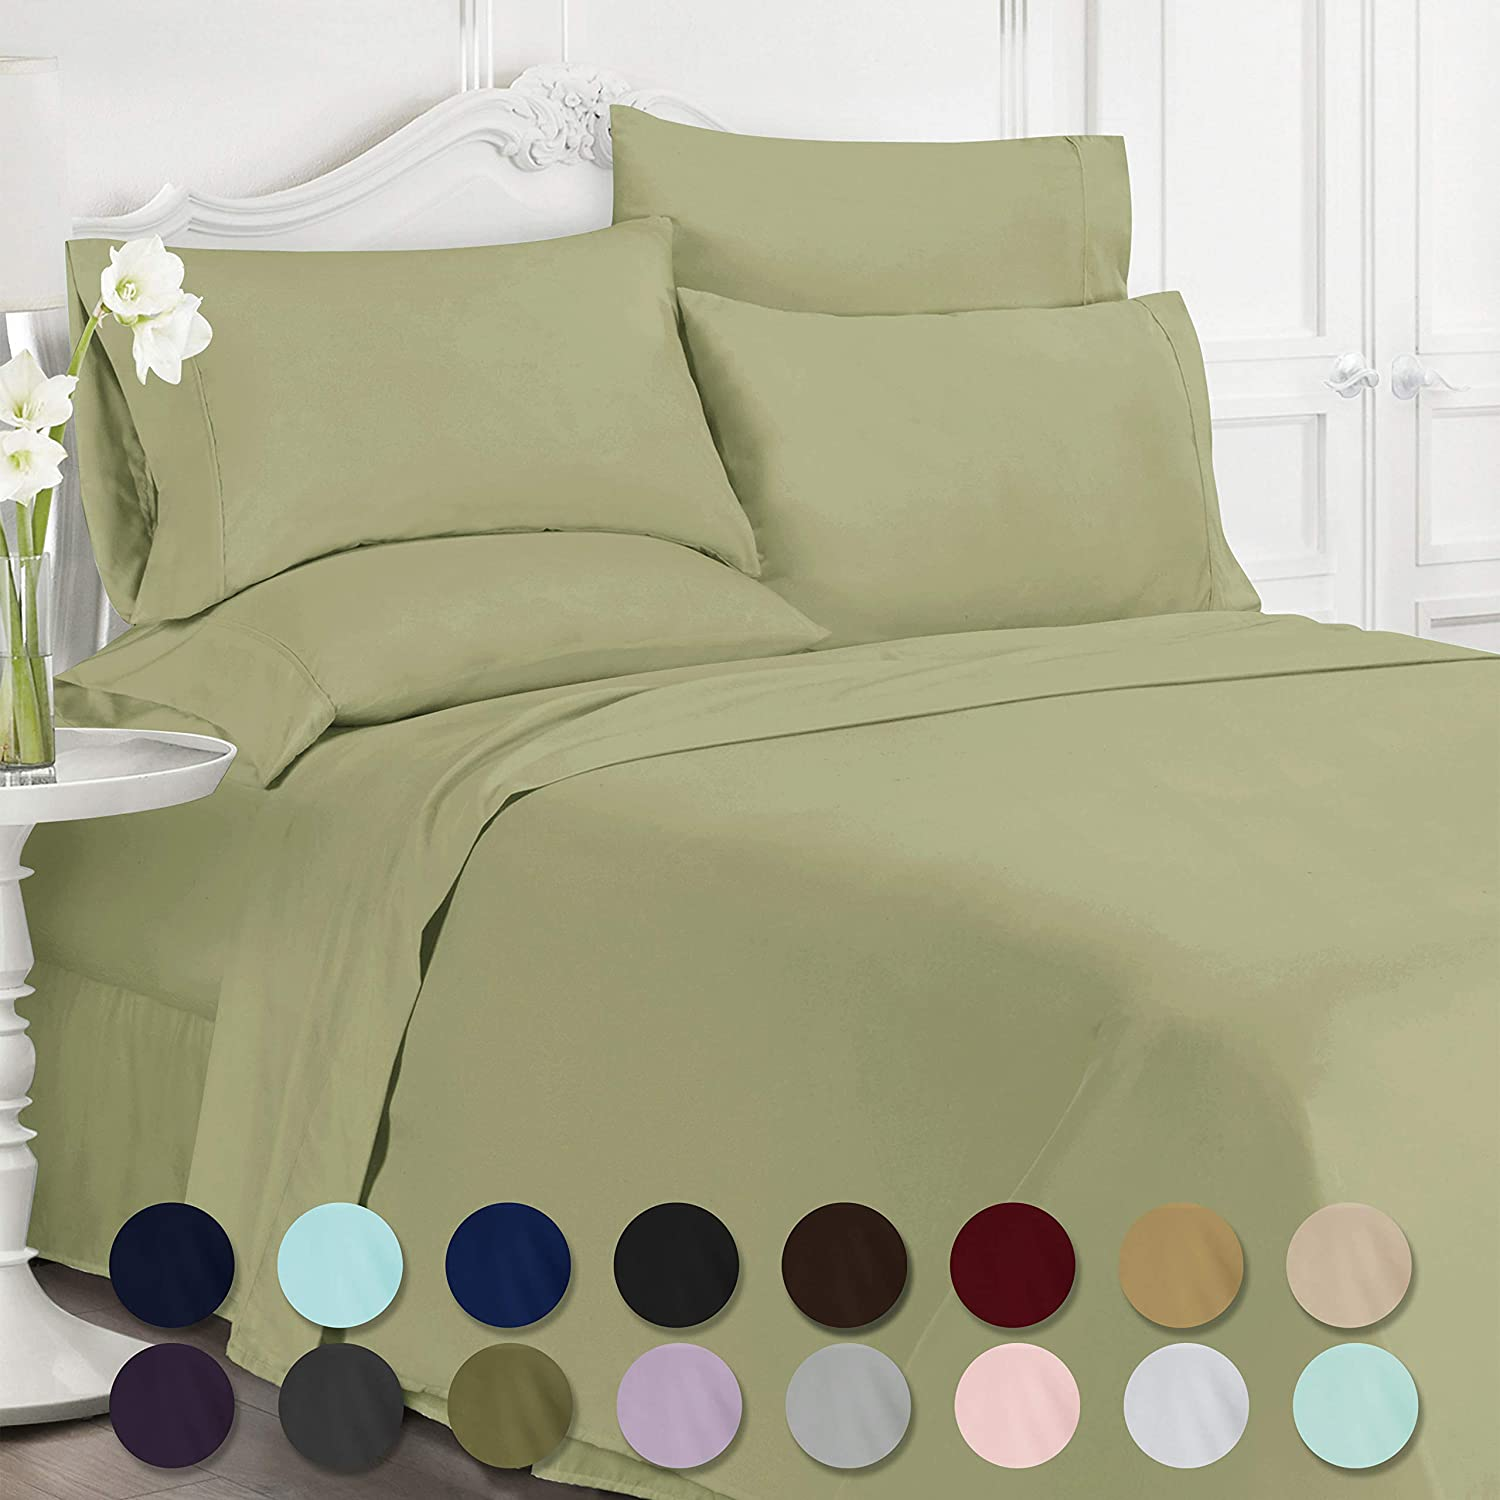 Swift Home Luxury Bedding Collection, Ultra-Soft Brushed Microfiber 6-Piece Bed Sheet Sets, Extremely Durable - Easy Fit - Wrinkle Resistant - (Includes 2 Bonus Pillowcases), Queen, Sage